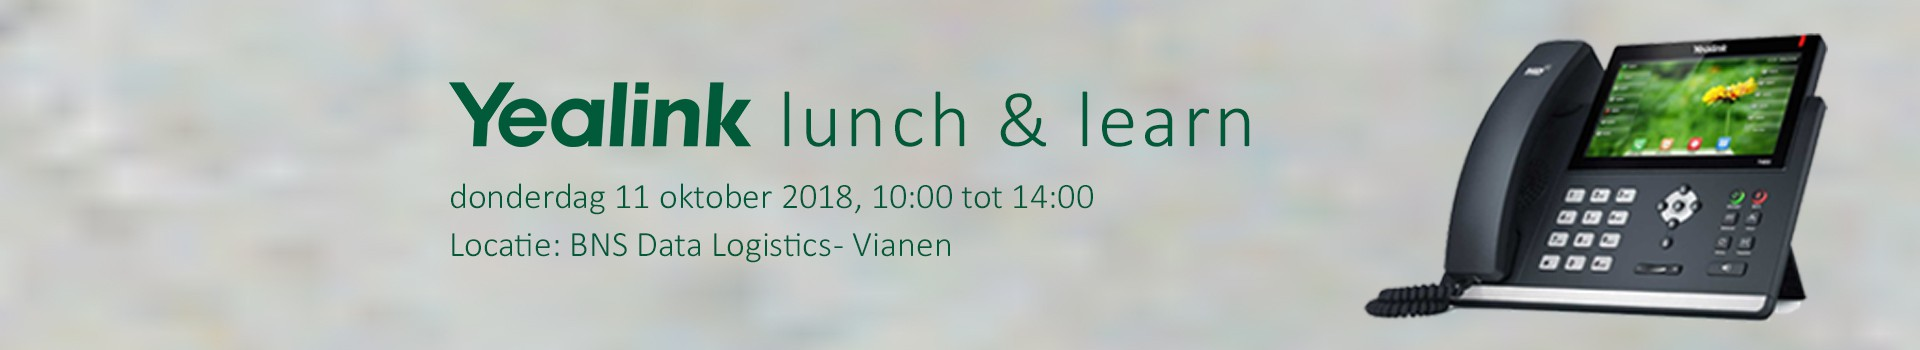 Yealink Lunch & Learn bijeenkomst